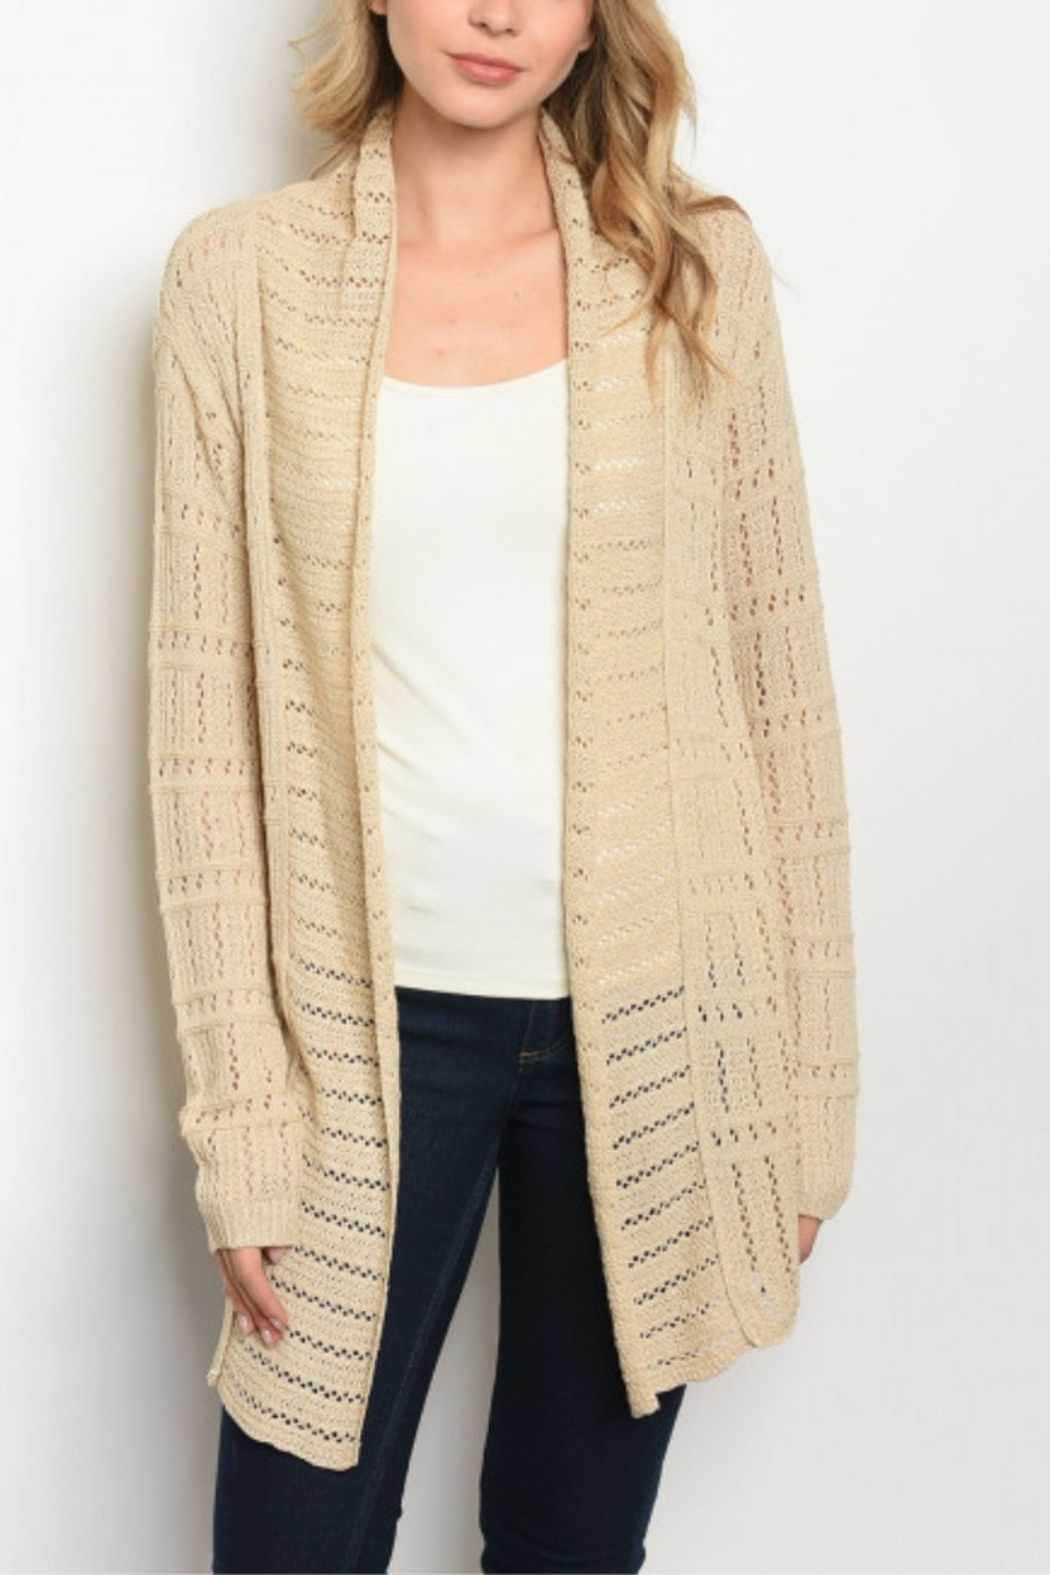 Lyn -Maree's Beige Everyday Cardi - Main Image